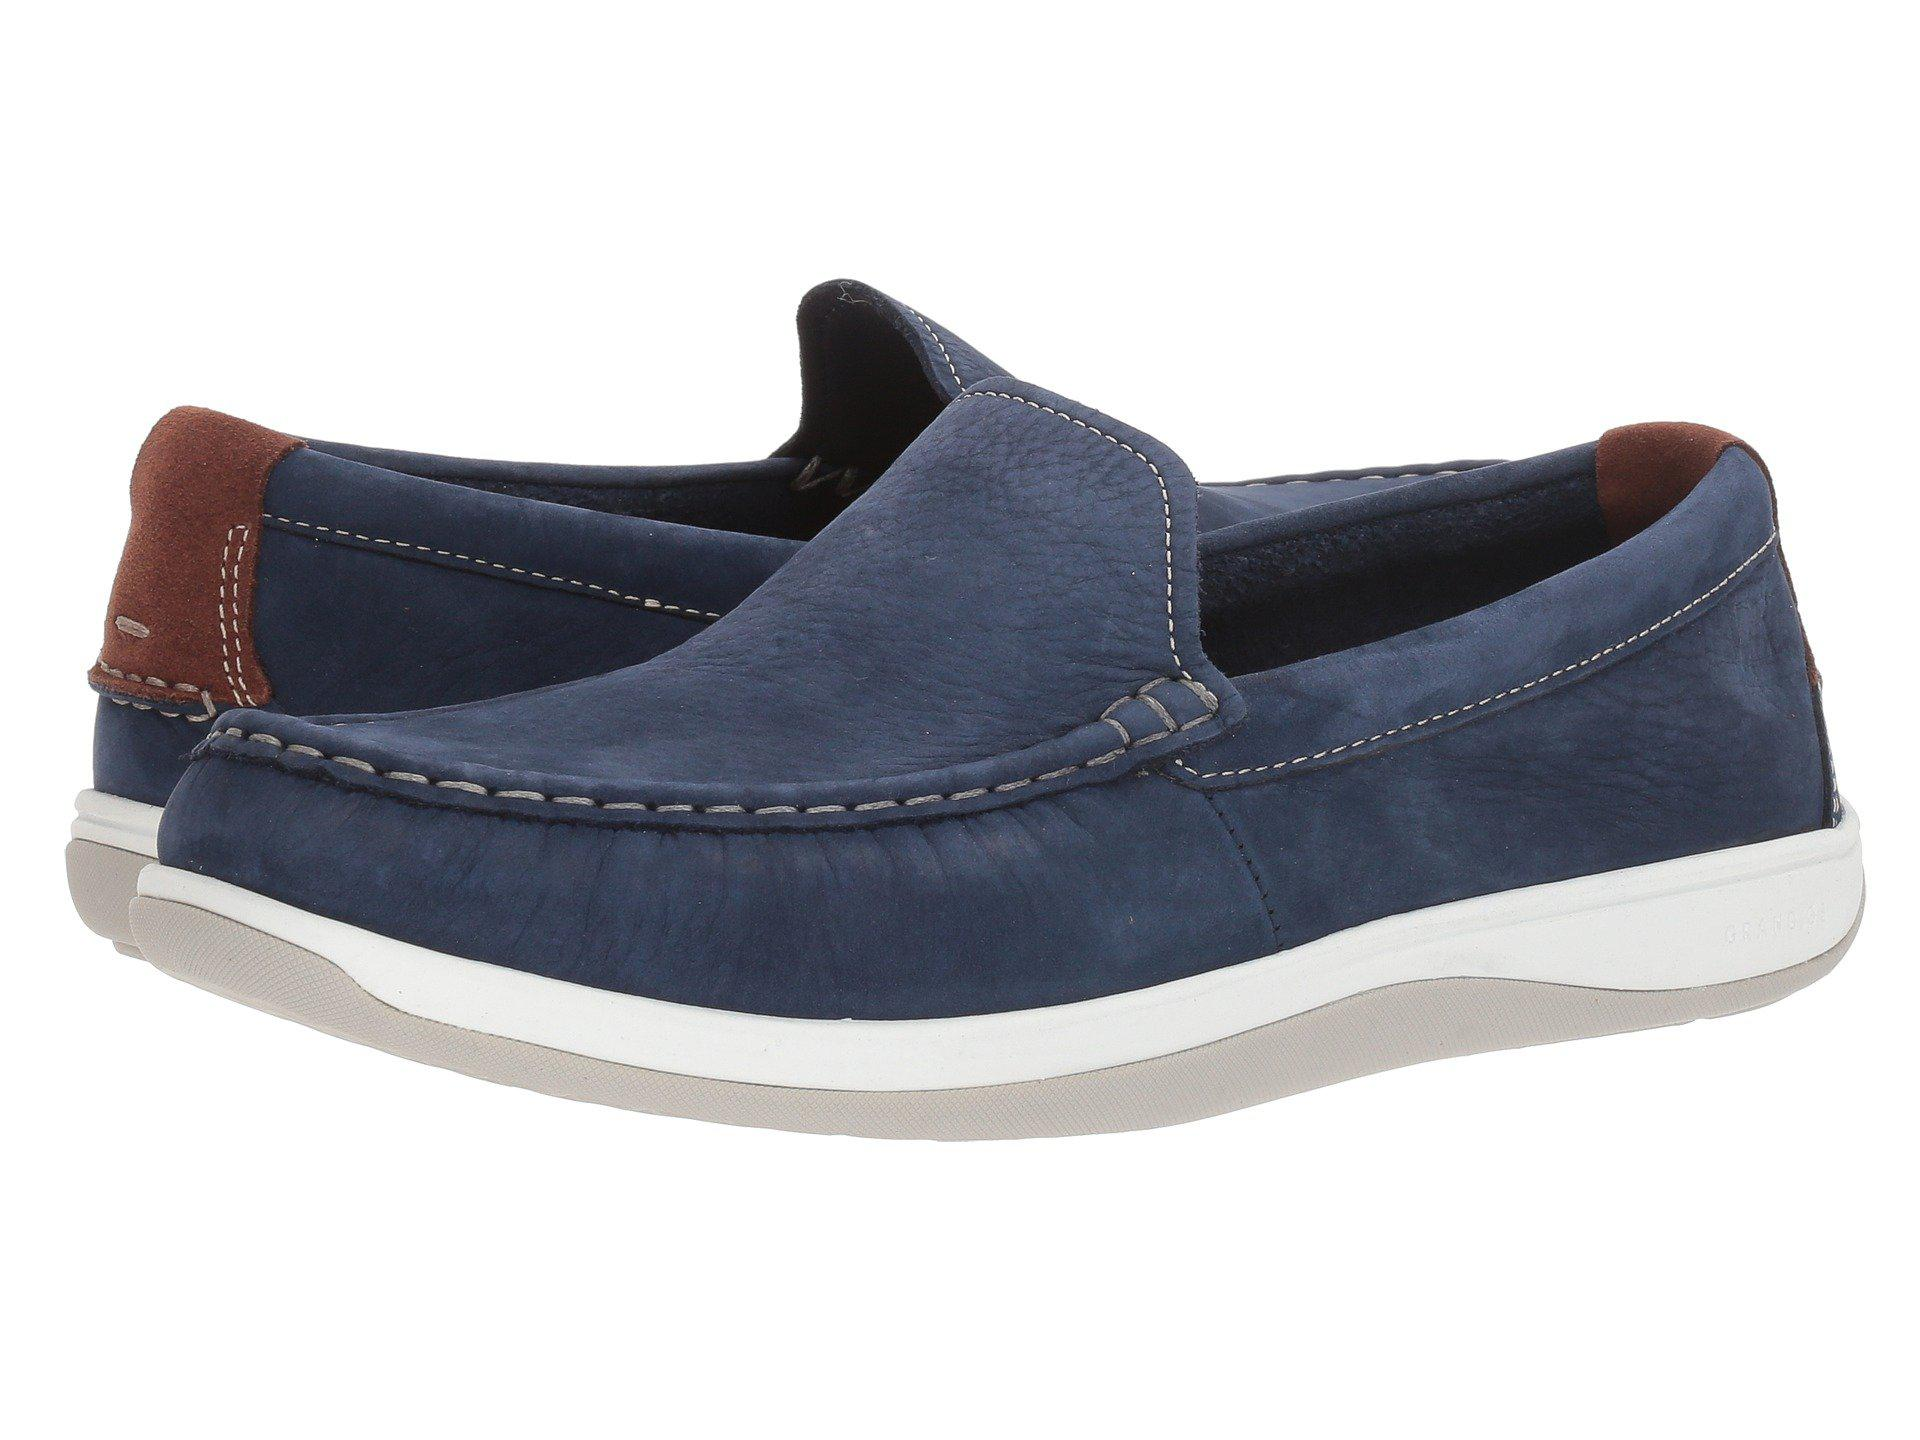 6411cde3024 Lyst - Cole Haan Boothbay Slip On Loafer in Blue for Men - Save 55%